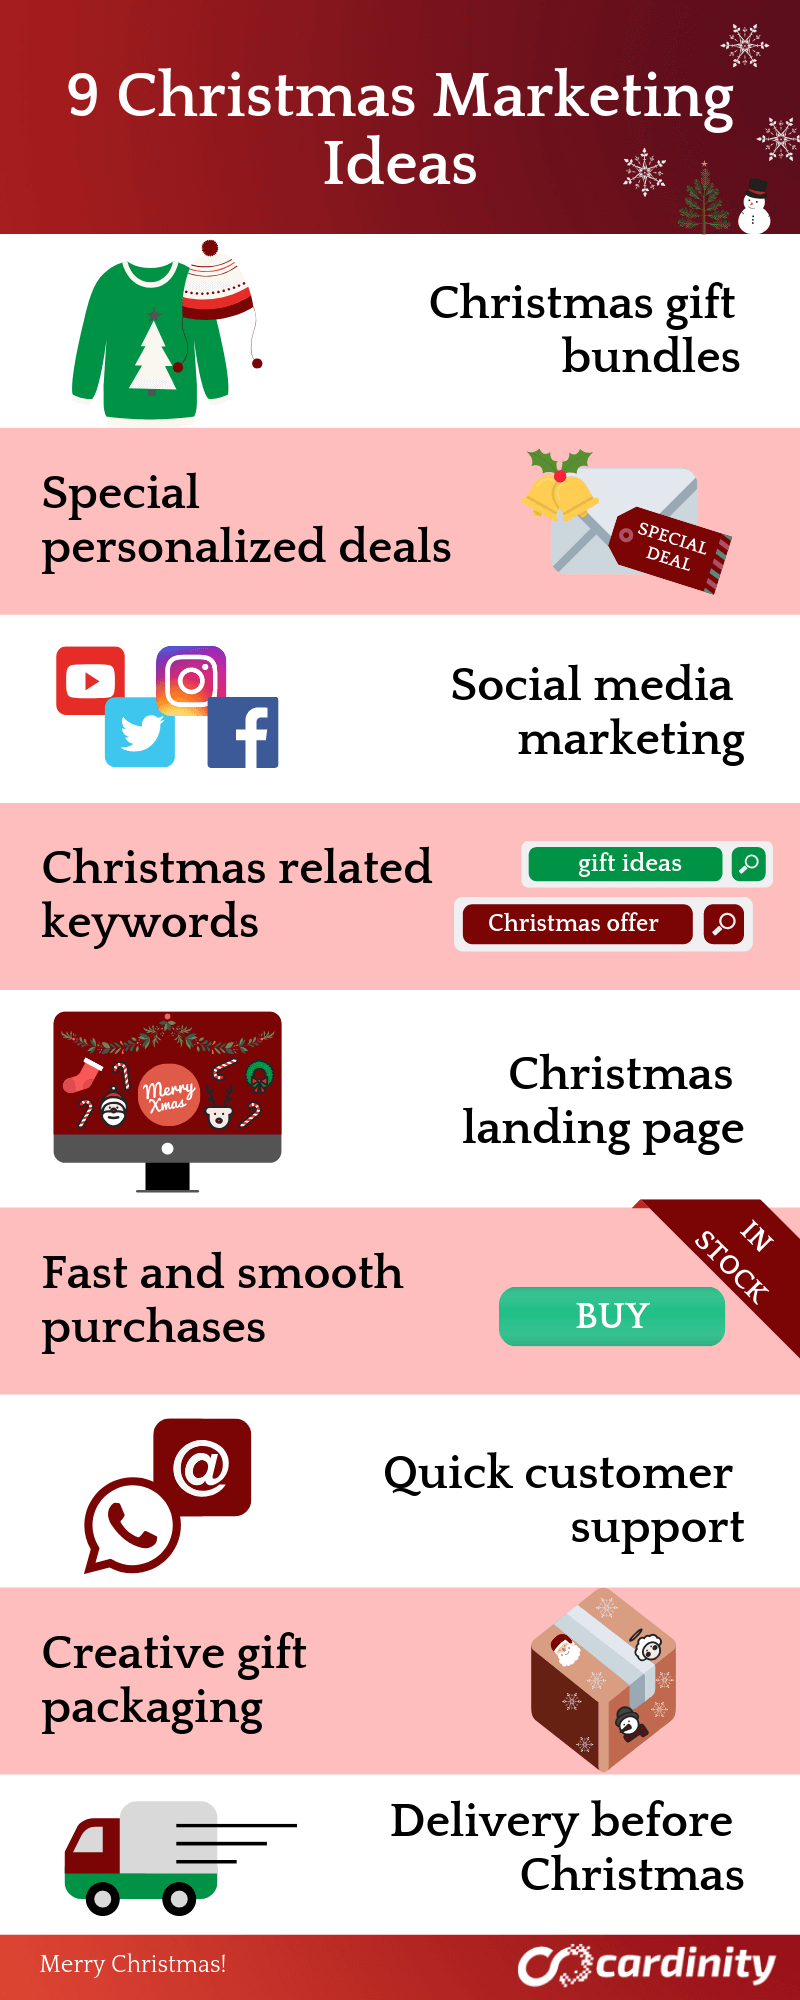 Christmas marketing ideas, infographic